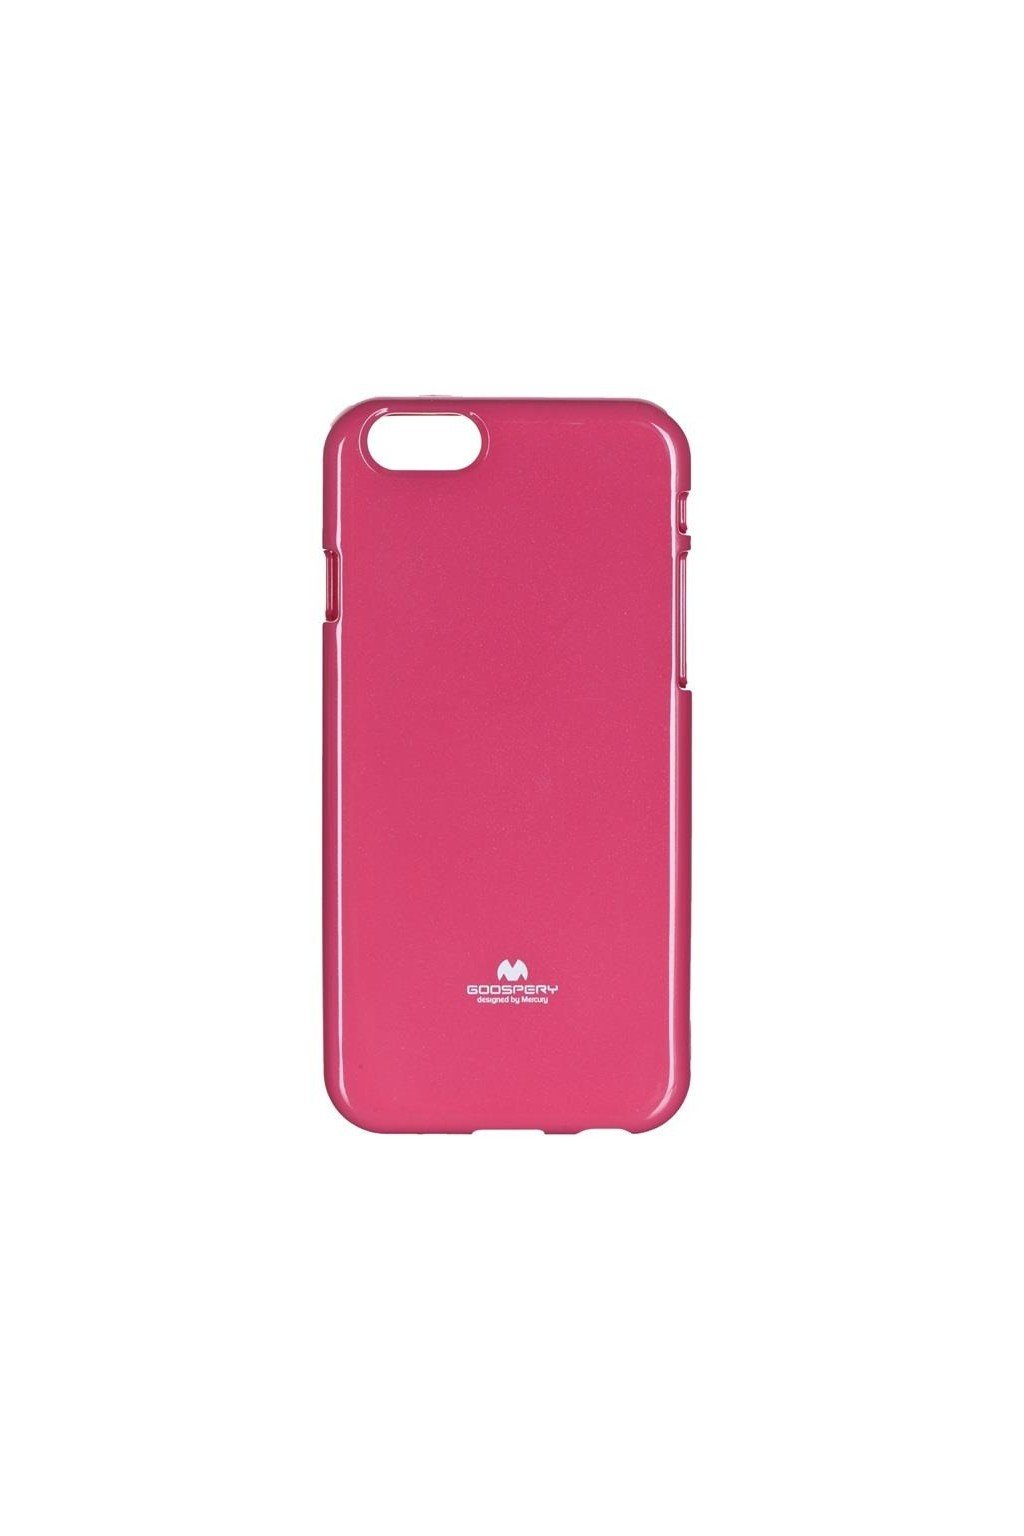 2528 goospery jelly case pro iphone 6 6s hot pink